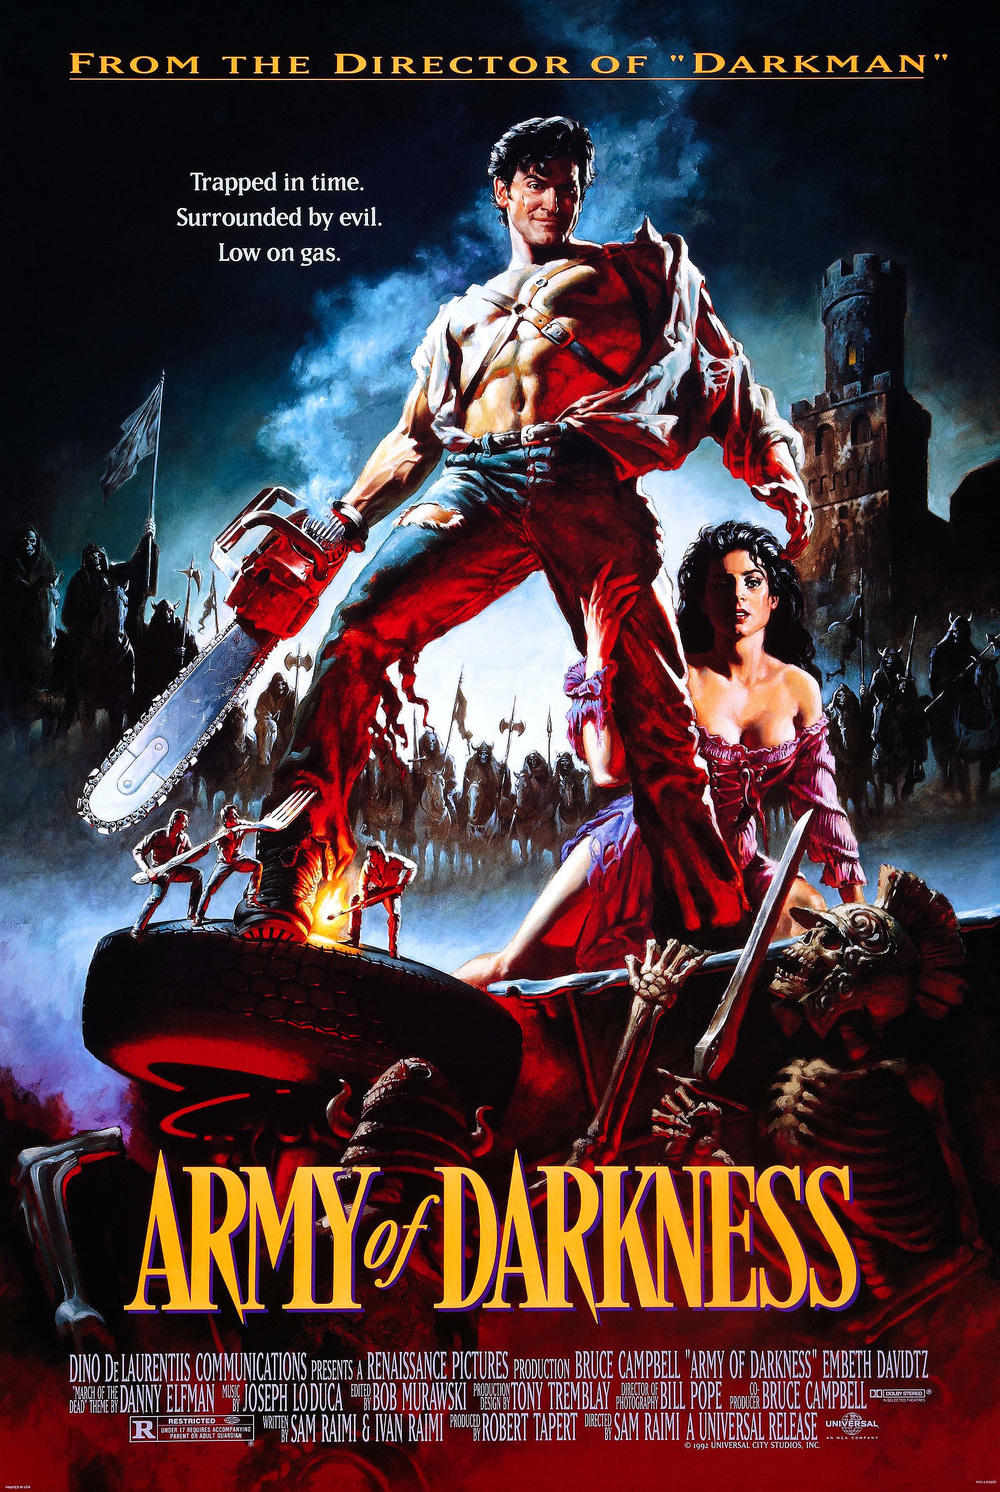 army_of_darkness_poster_01.jpg